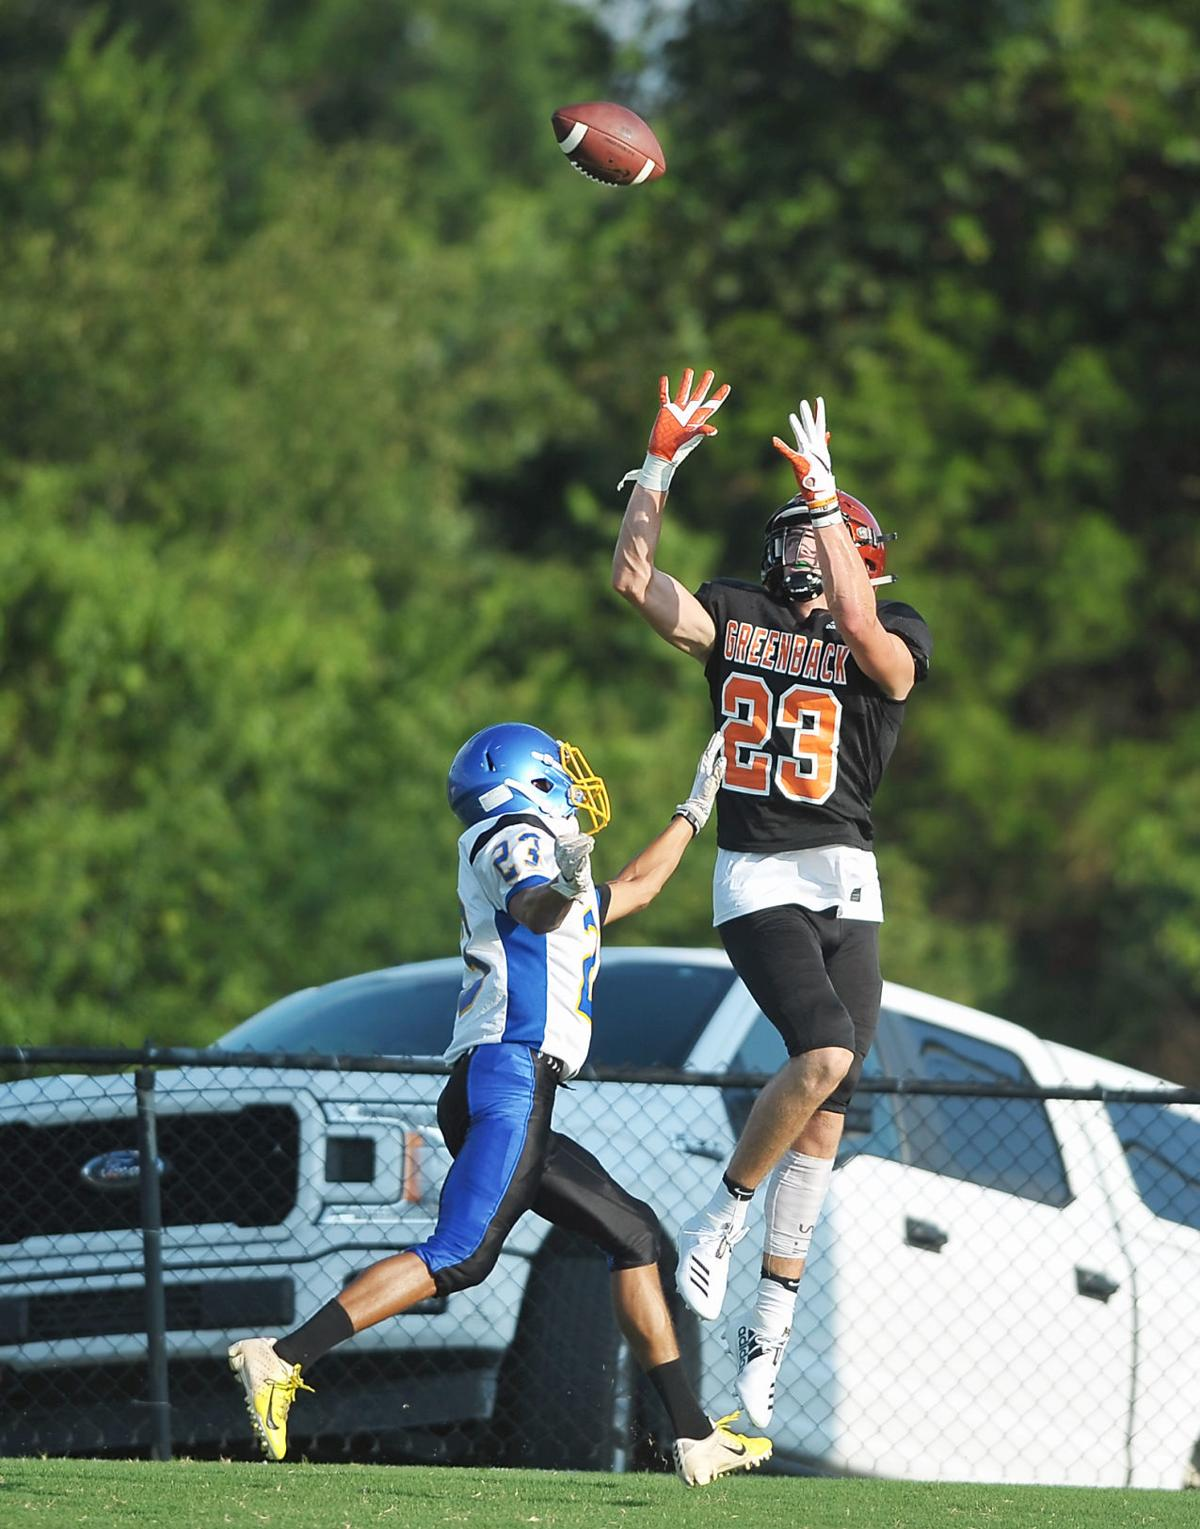 FOOTBALL: Greenback's Holden Willis vs Sweetwater